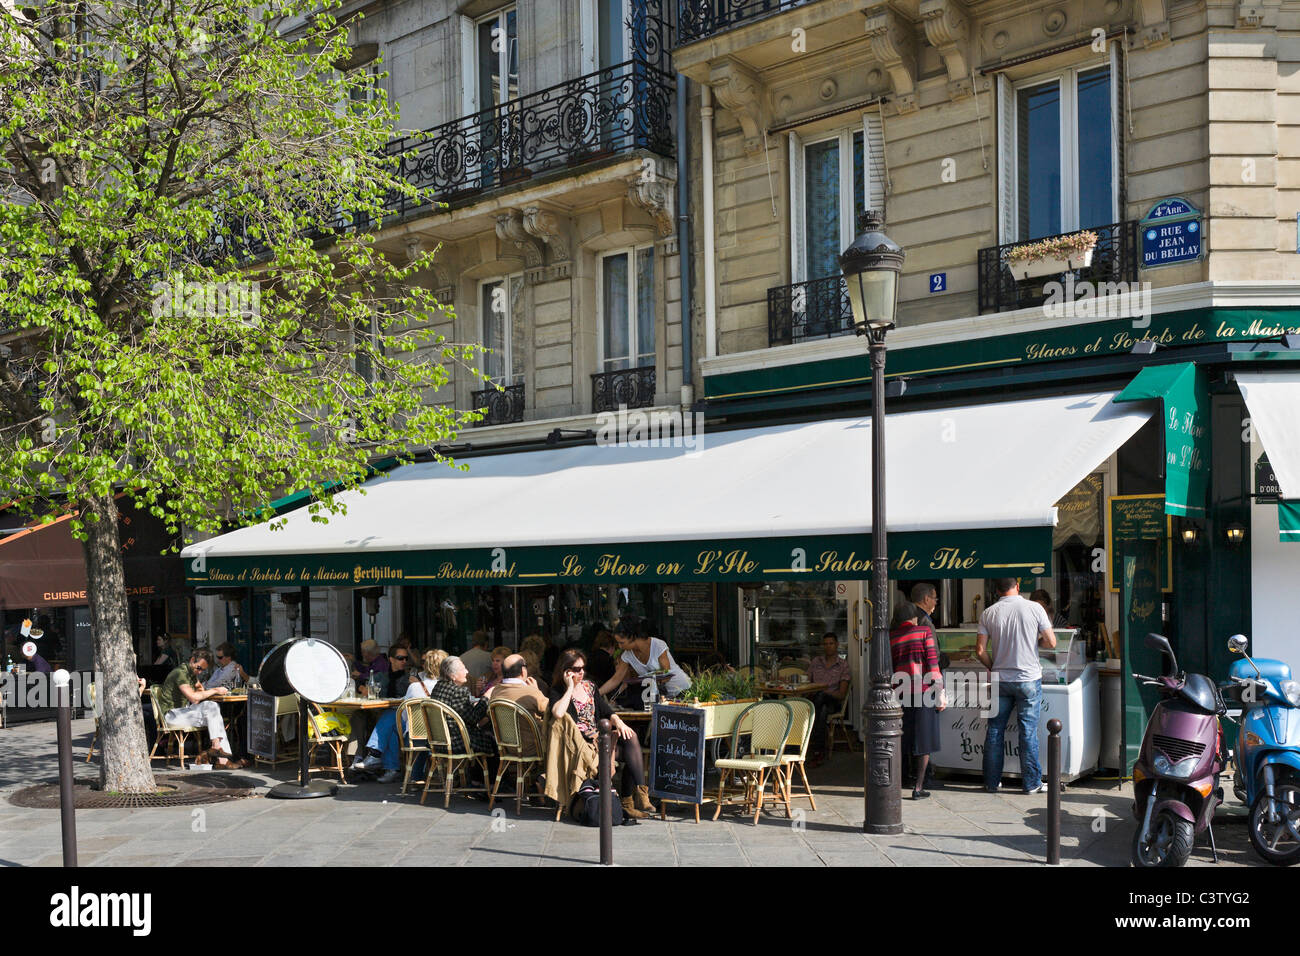 Sidewalk cafe on the corner of Rue Jean du Bellay and Quai d'Orleans, Ile Saint-Louis, Paris, France Stock Photo